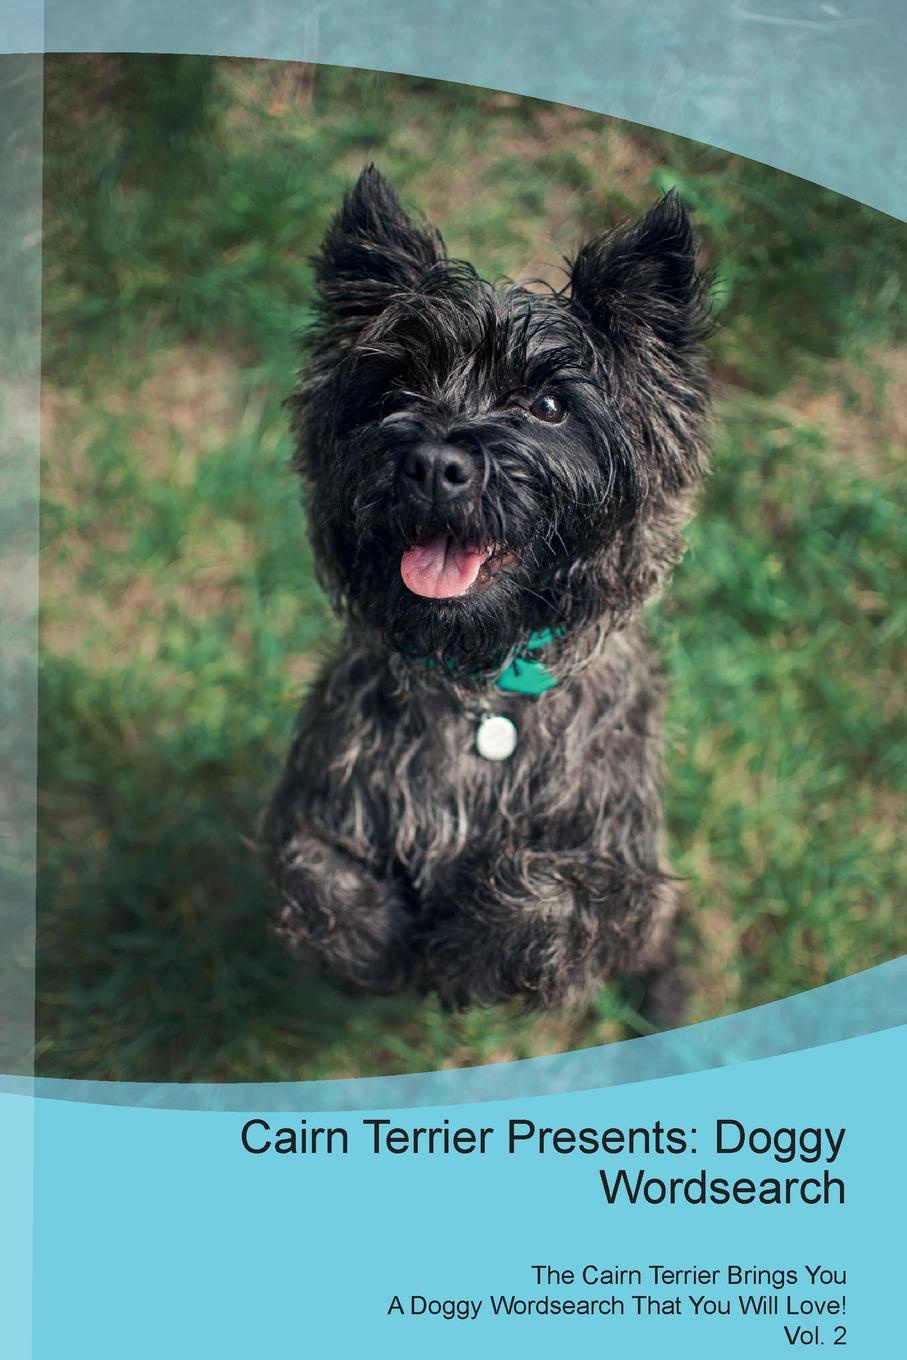 Doggy Puzzles Cairn Terrier Presents. Wordsearch The Brings You A That Will Love! Vol. 2